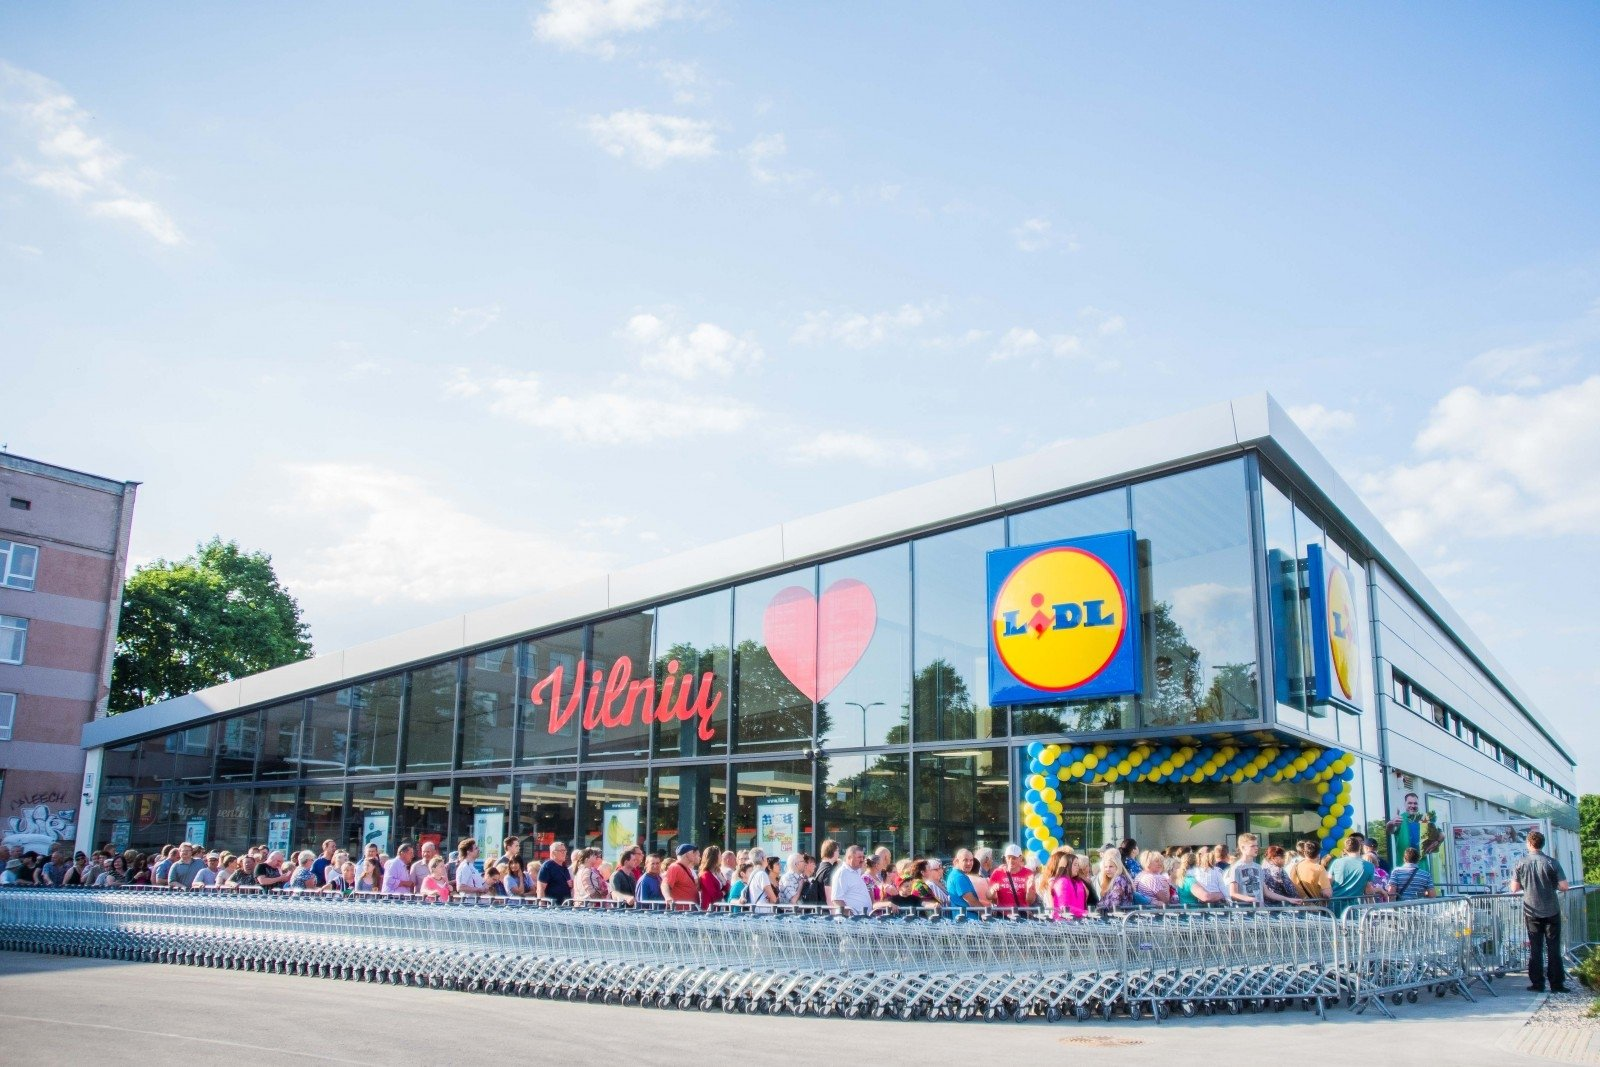 Should Lithuanian retailers be scared of Lidl's entry into